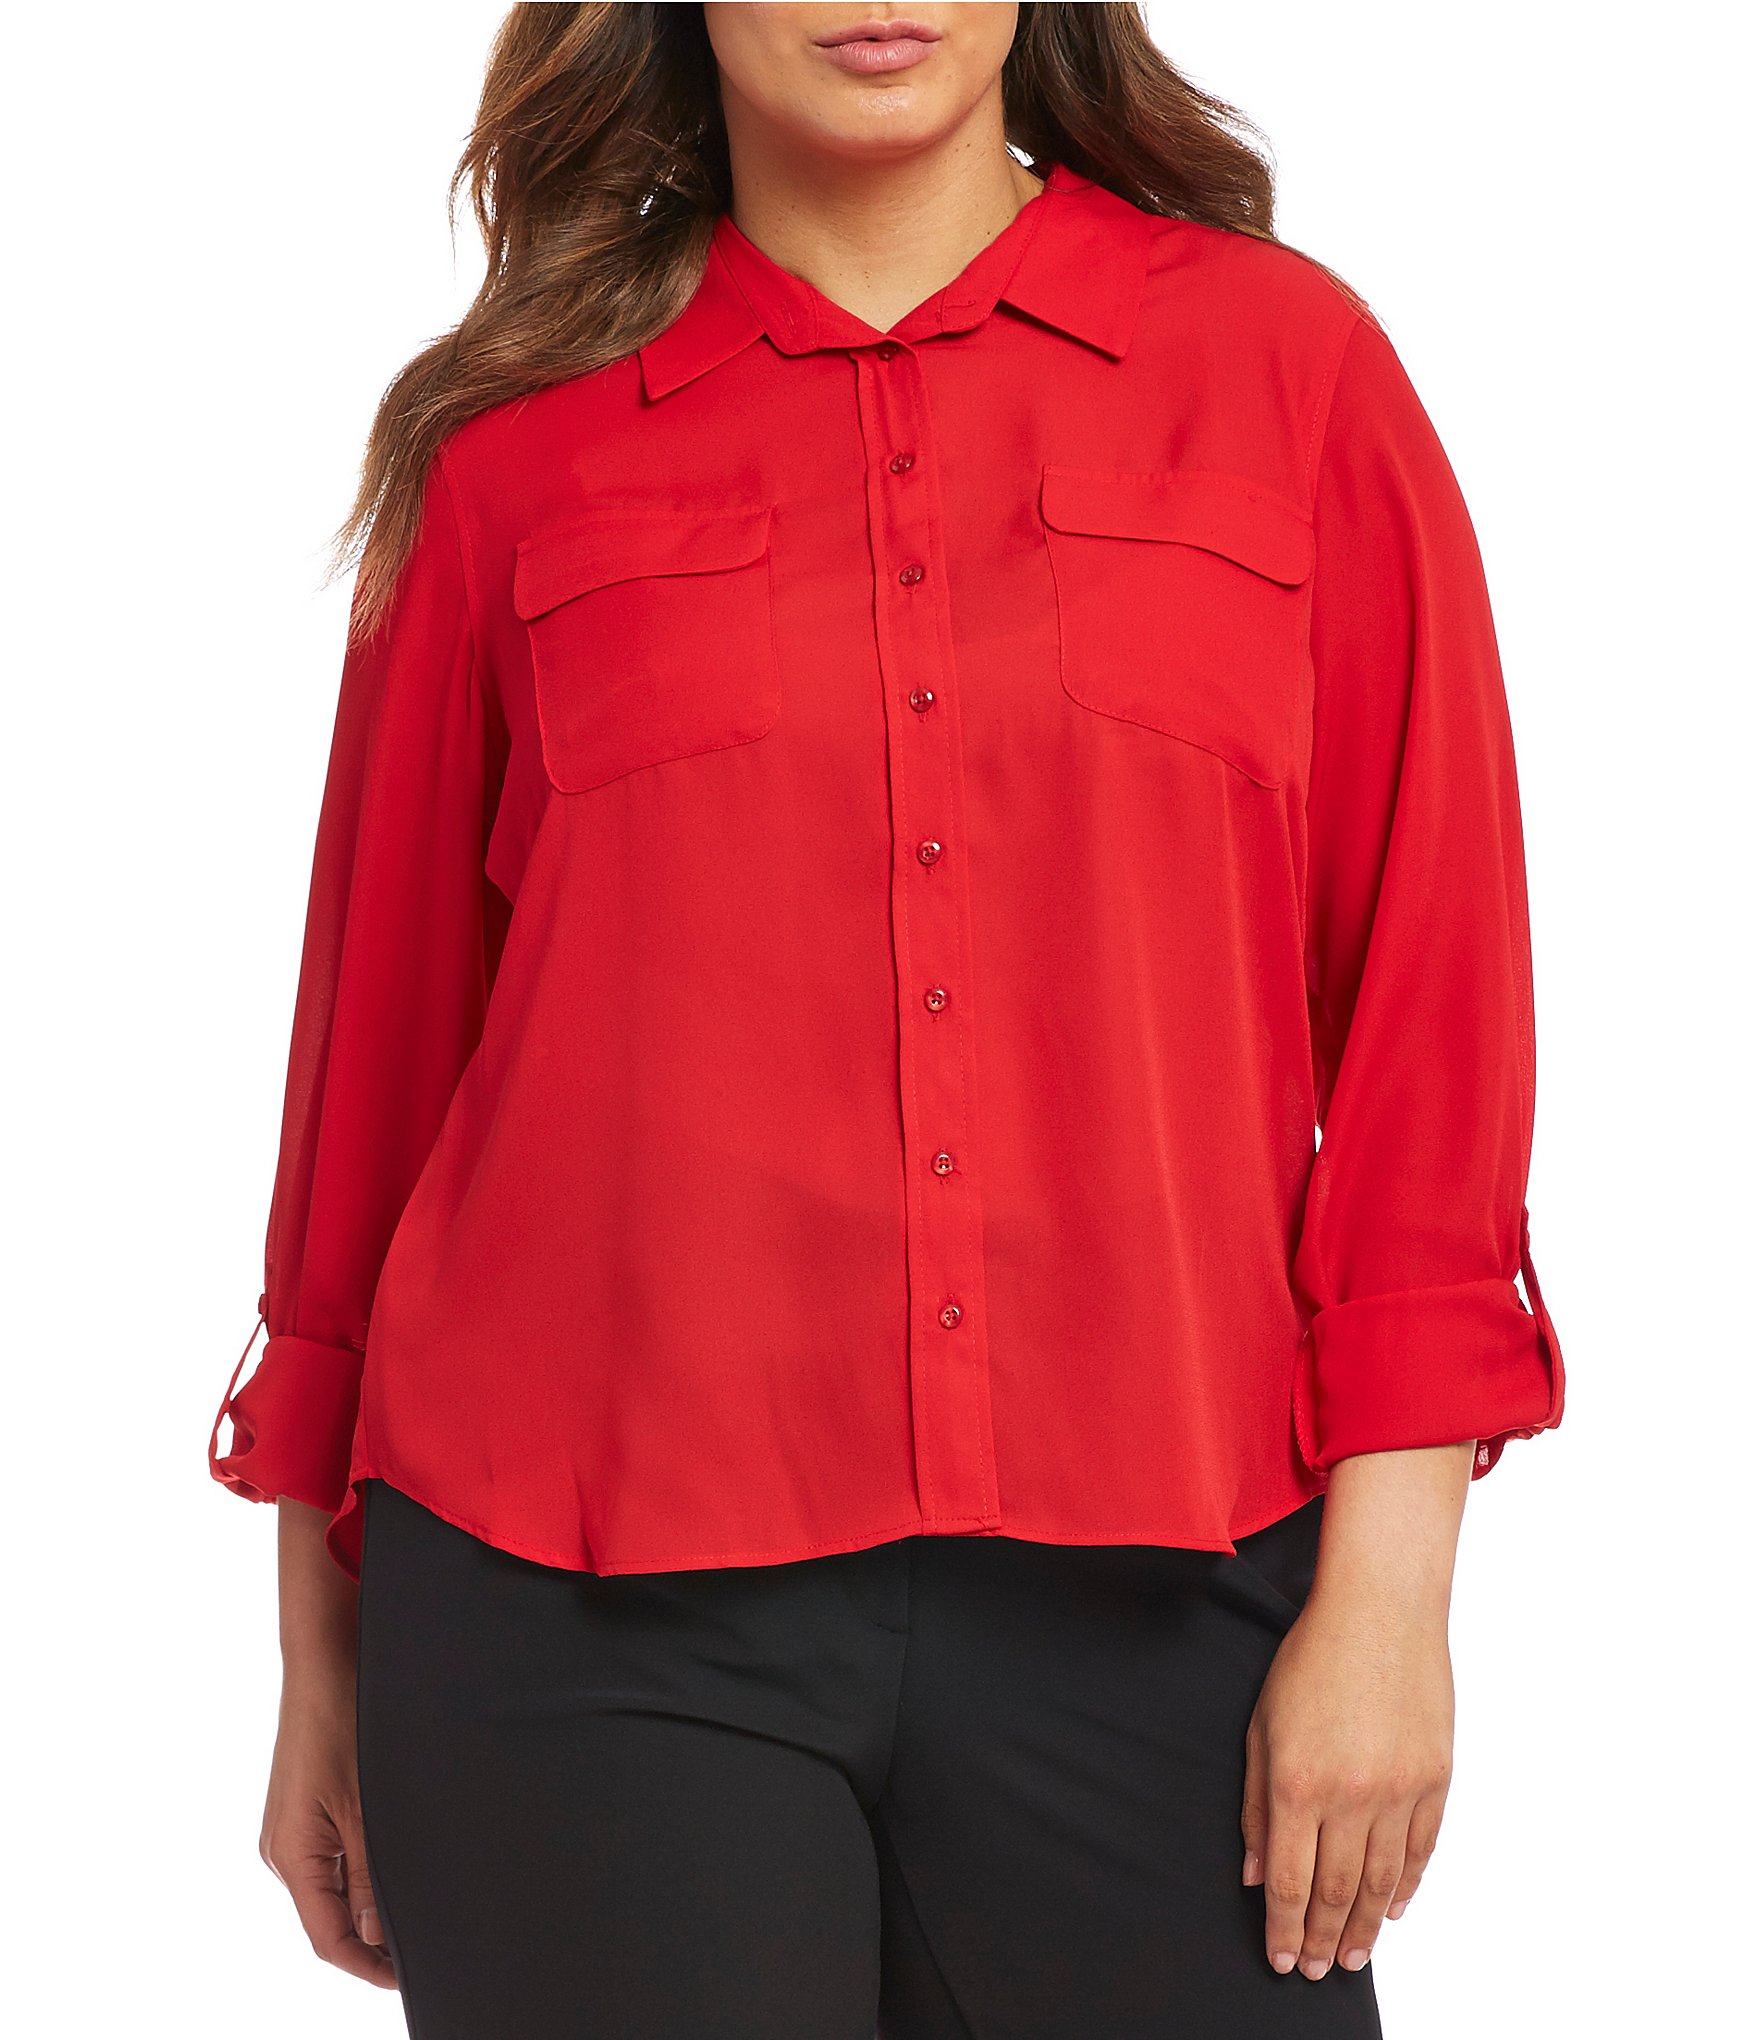 red blouse plus-size tops u0026 blouses | dillards ksrydyy